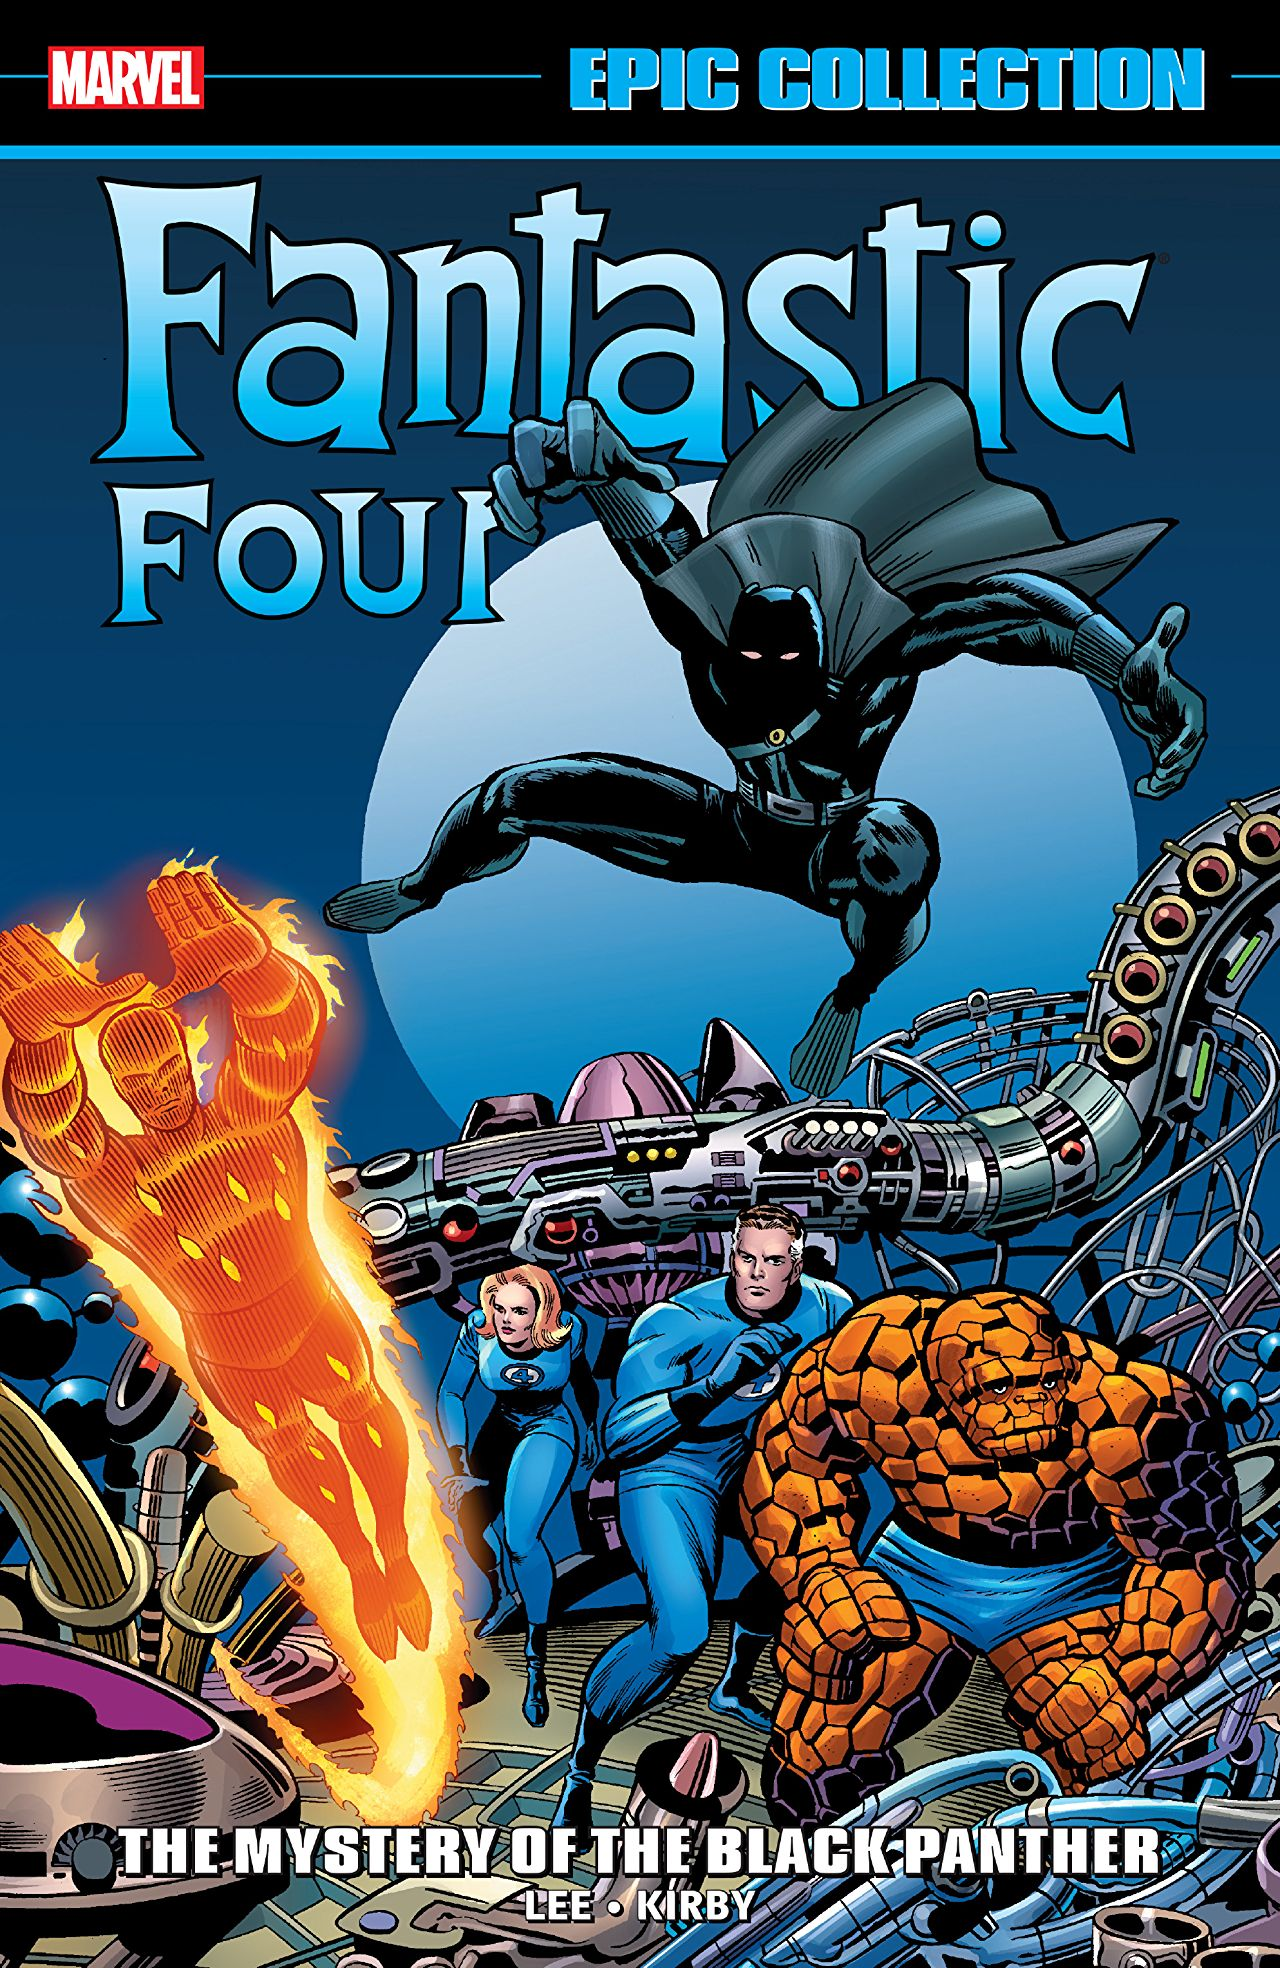 Fantastic Four Epic Collection: The Mystery of the Black Panther review